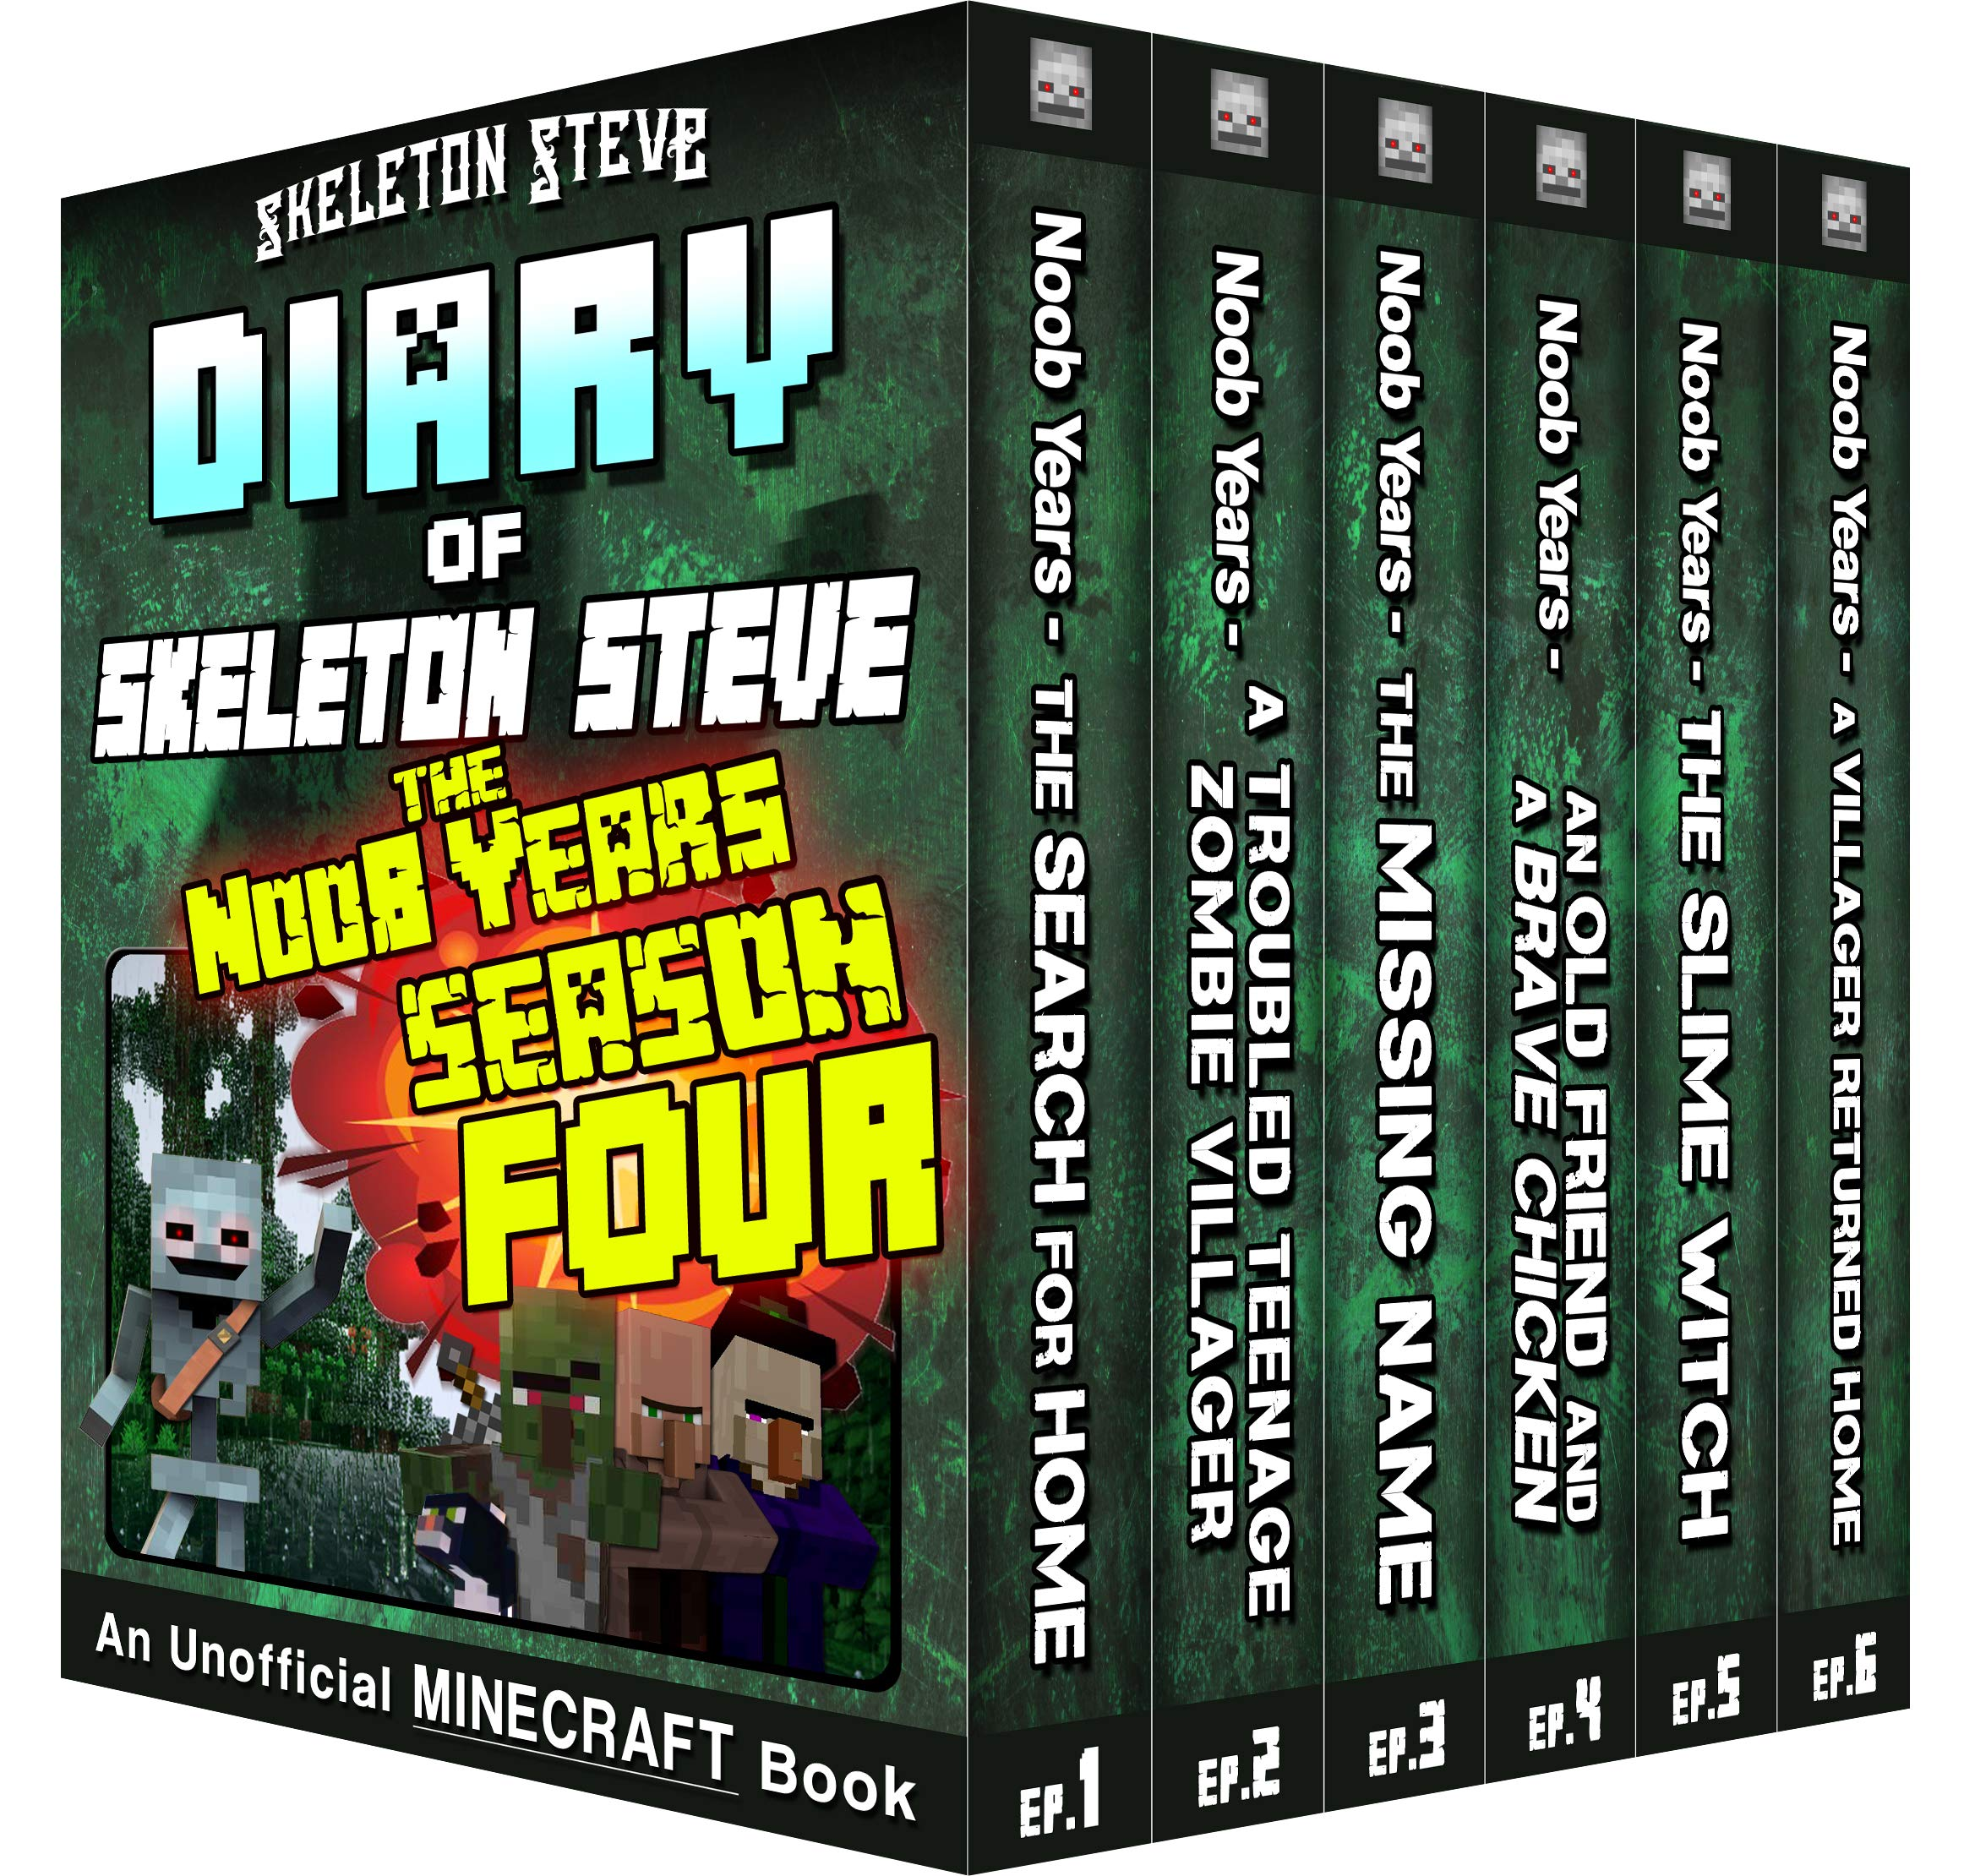 Minecraft Diary of Skeleton Steve the Noob Years - FULL Season Four (4): Unofficial Minecraft Books for Kids, Teens, & Nerds - Adventure Fan Fiction Diary ... - Bundle Box Sets 16) por Skeleton Steve